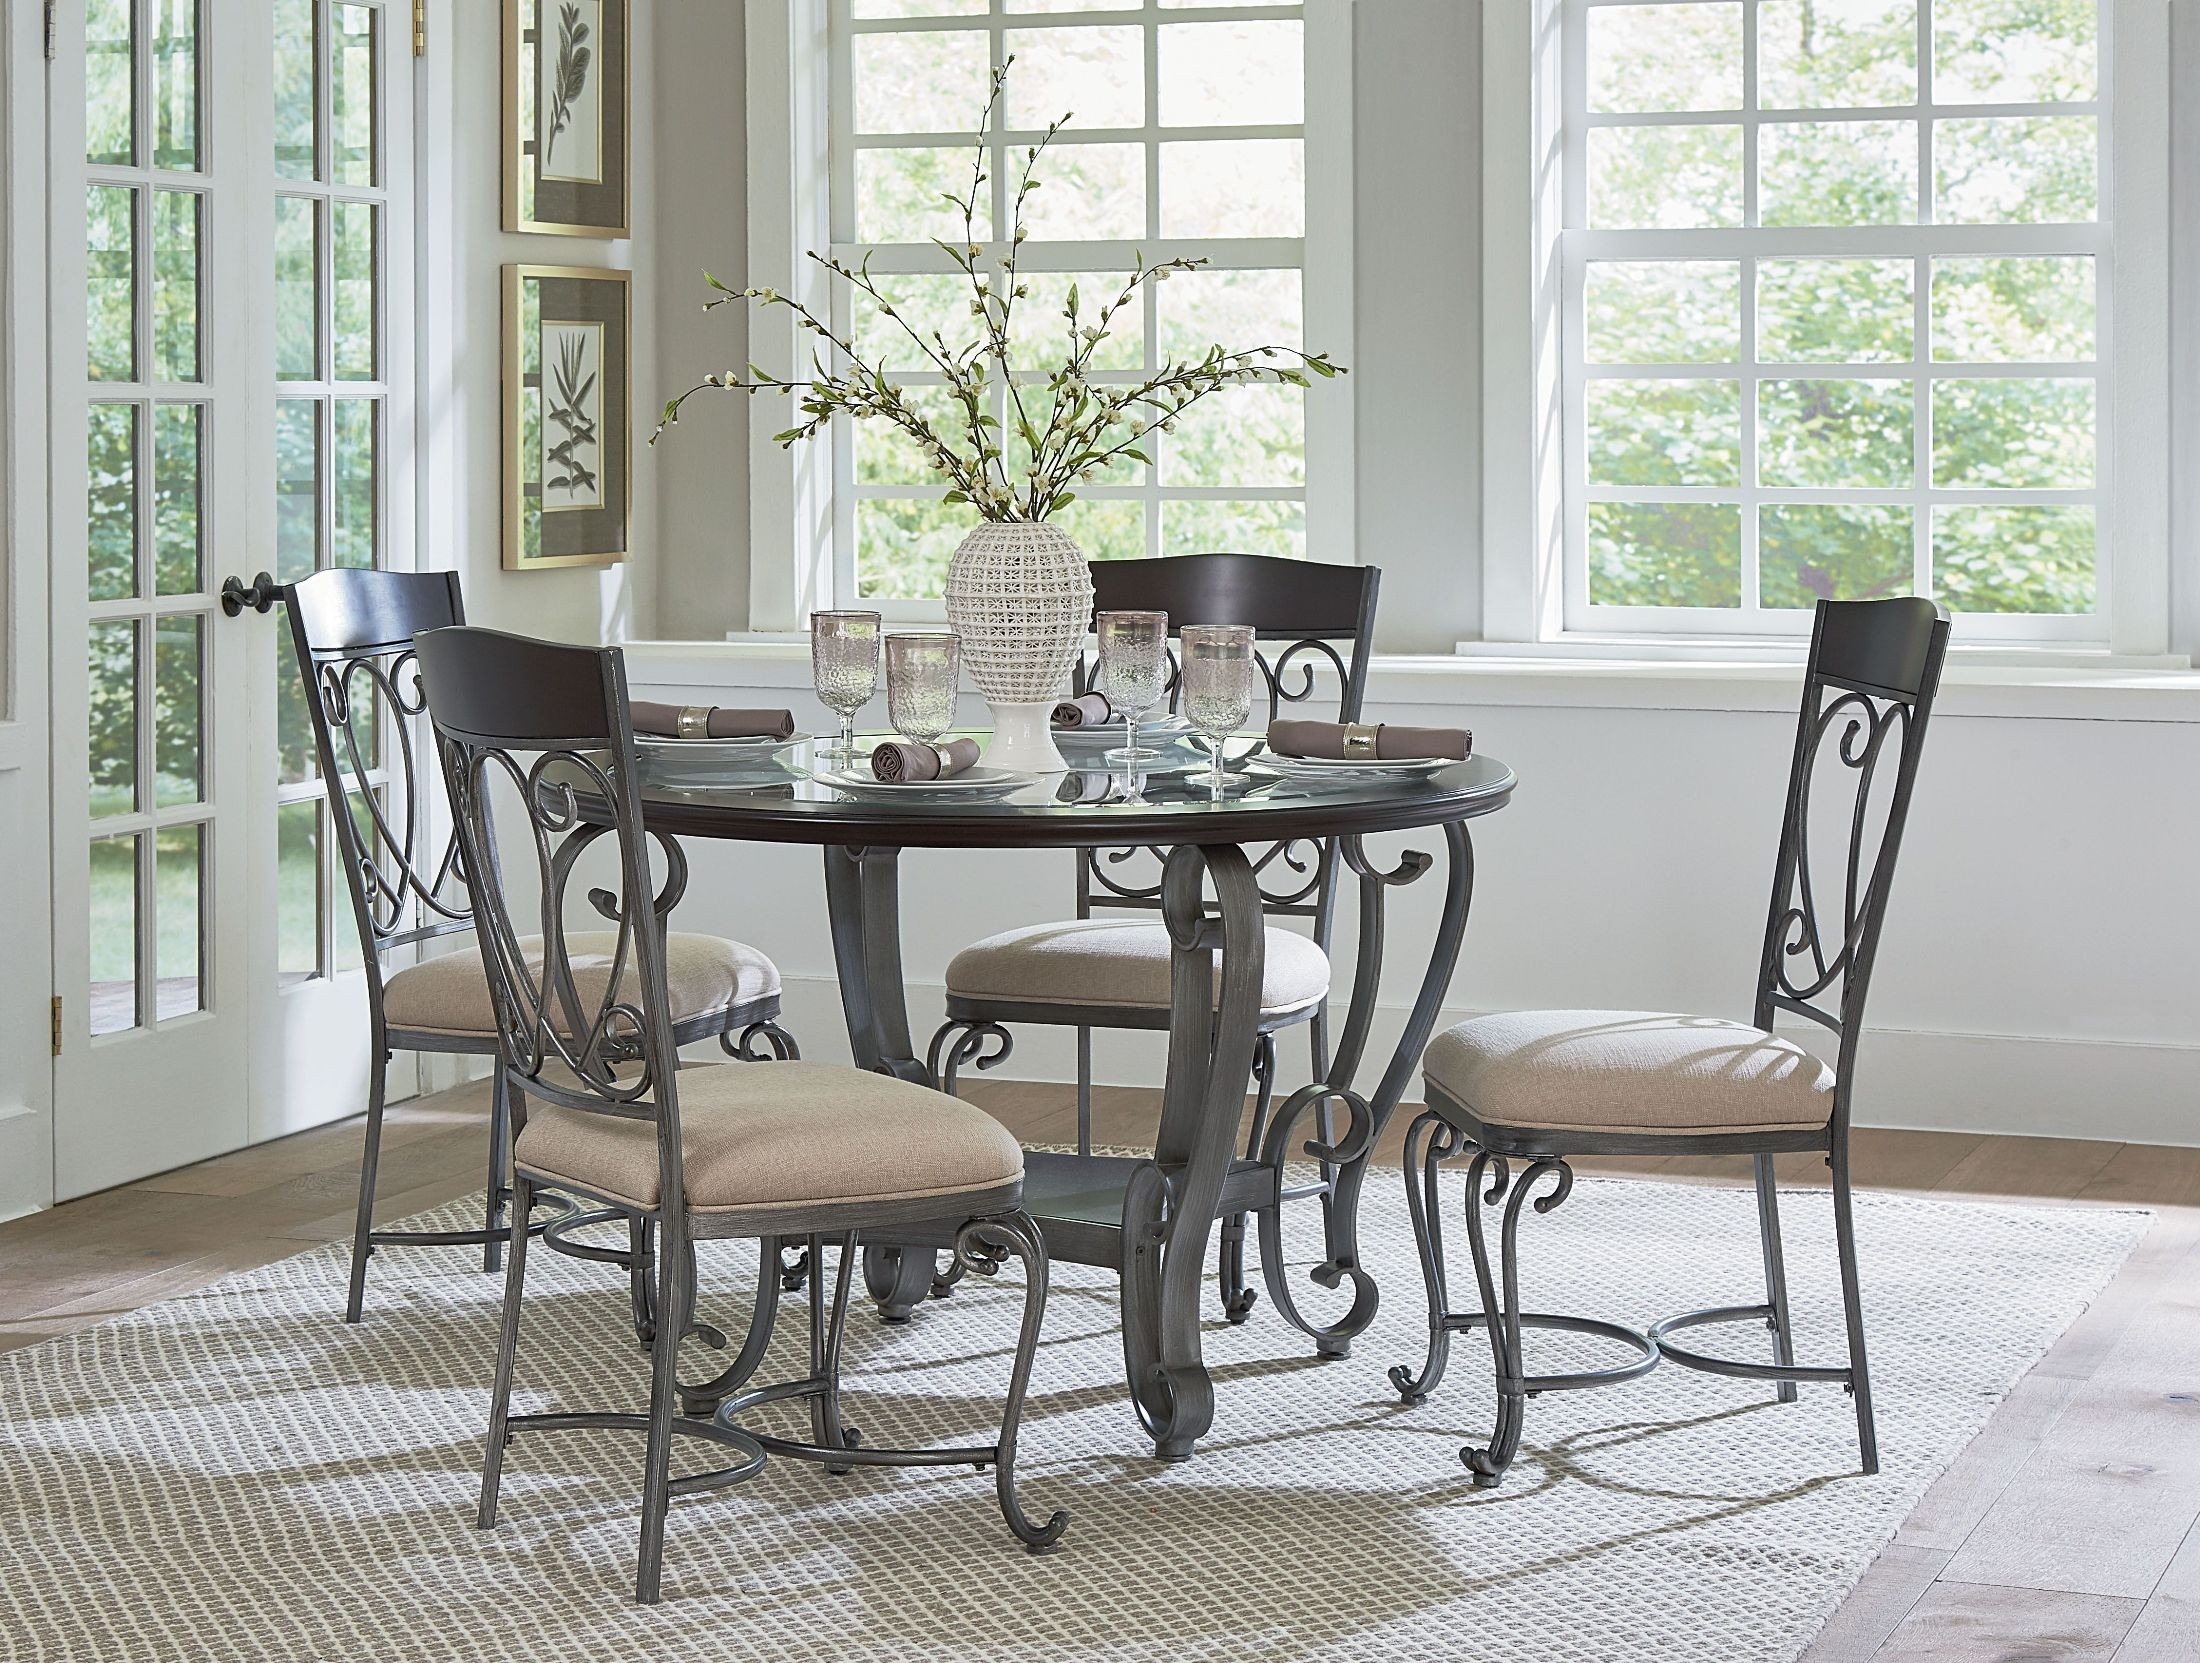 Cyprus chrome round dining room set from standard